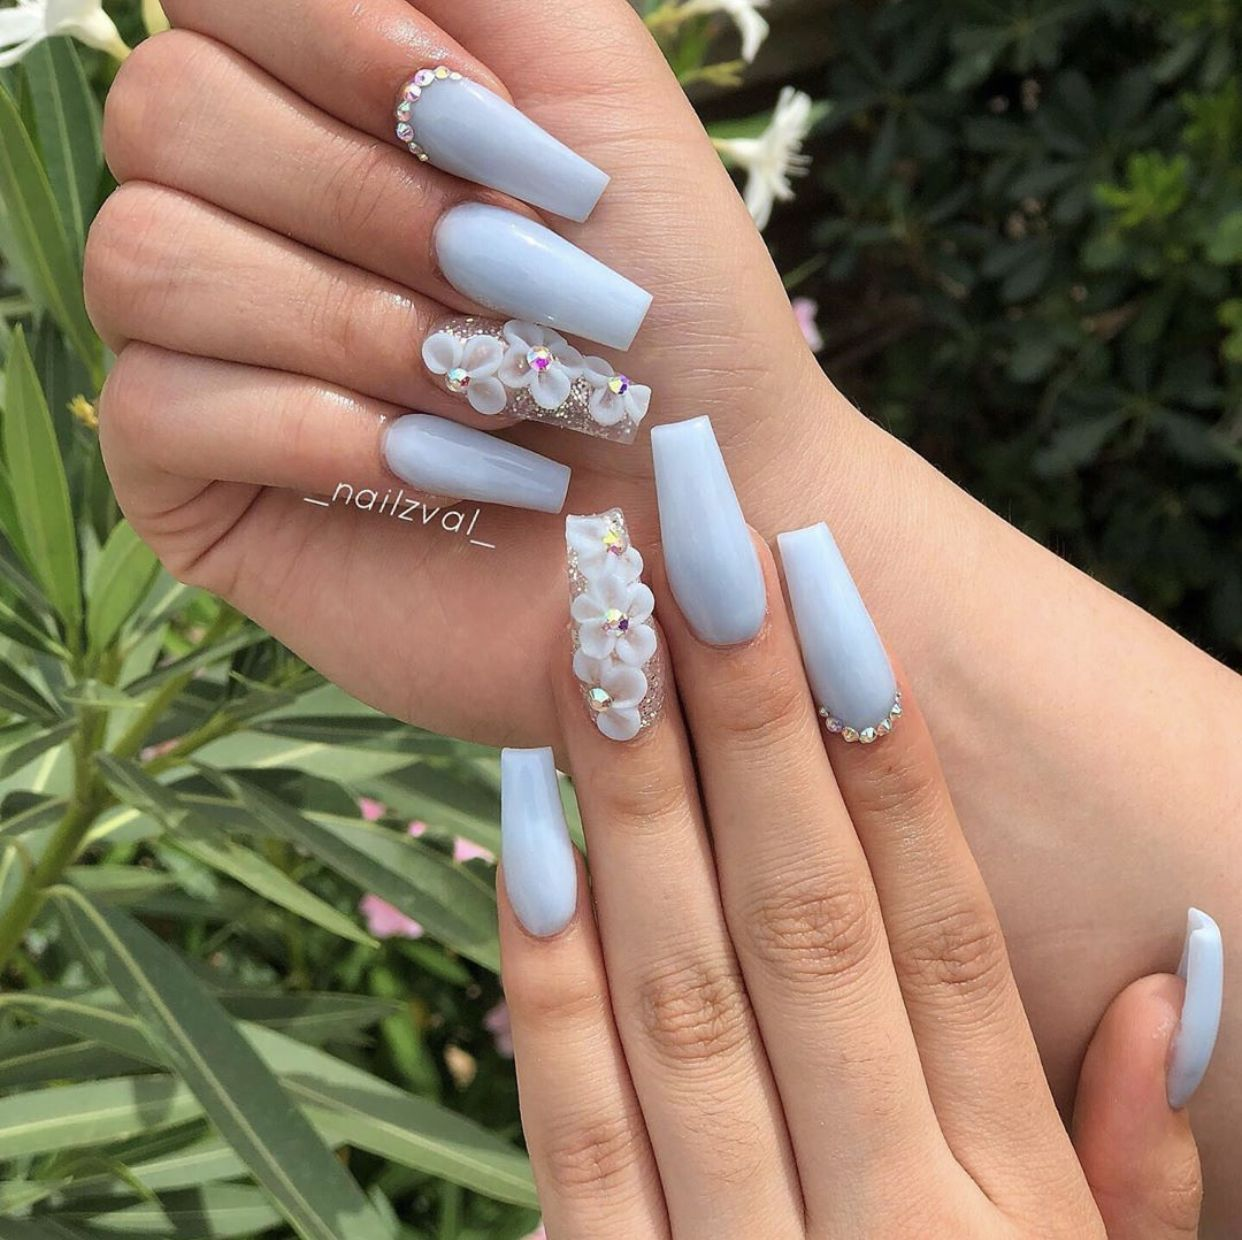 Pin By Ellen Cristina On Nail Design In 2020 Blue Acrylic Nails Quinceanera Nails Baby Blue Acrylic Nails